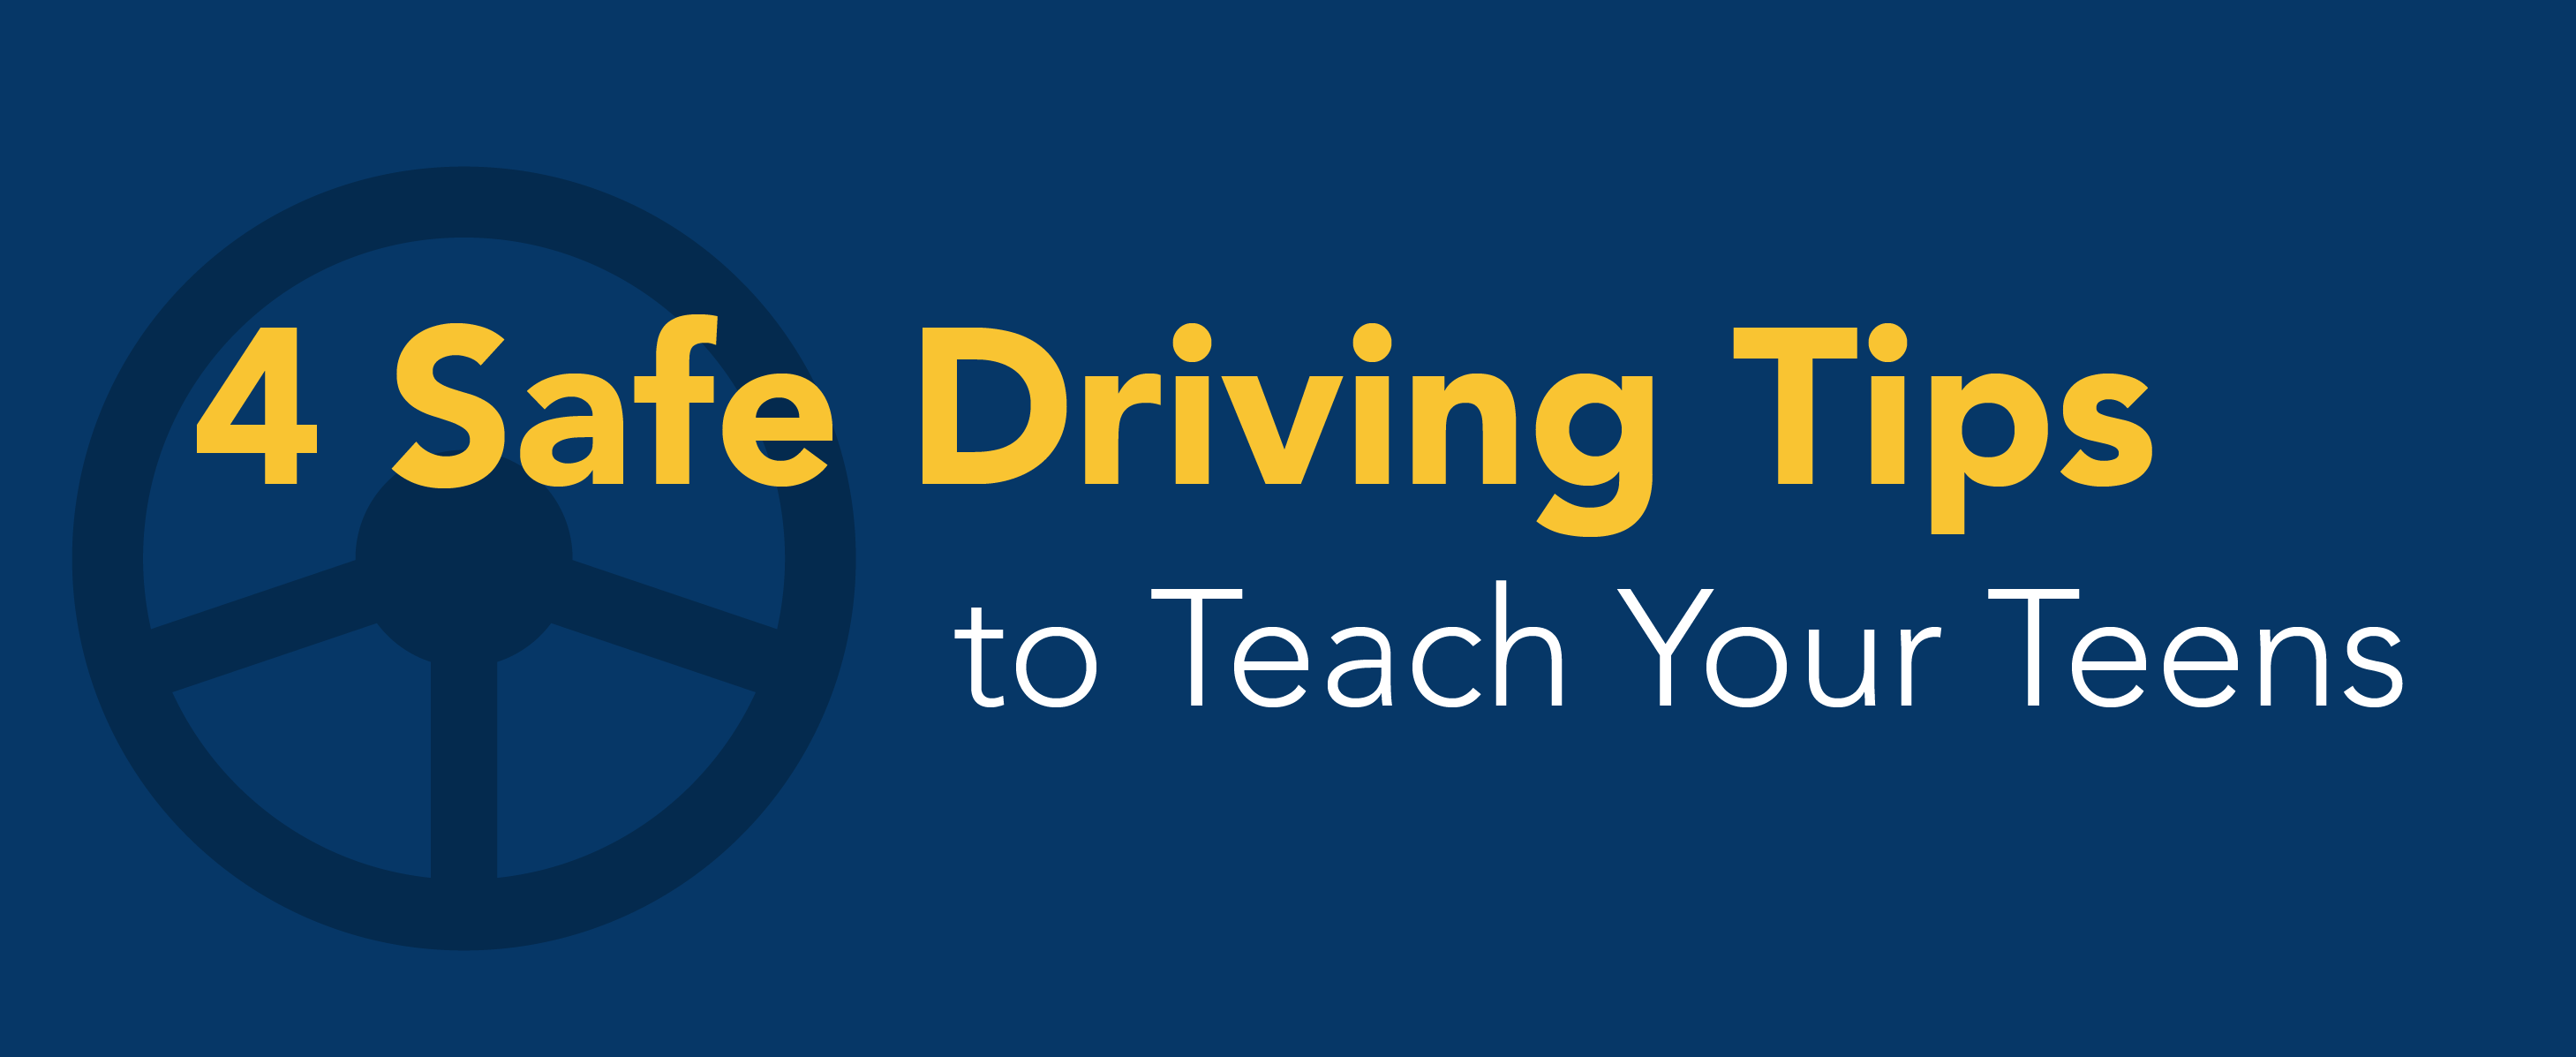 4 safe driving tips to teach your kids.